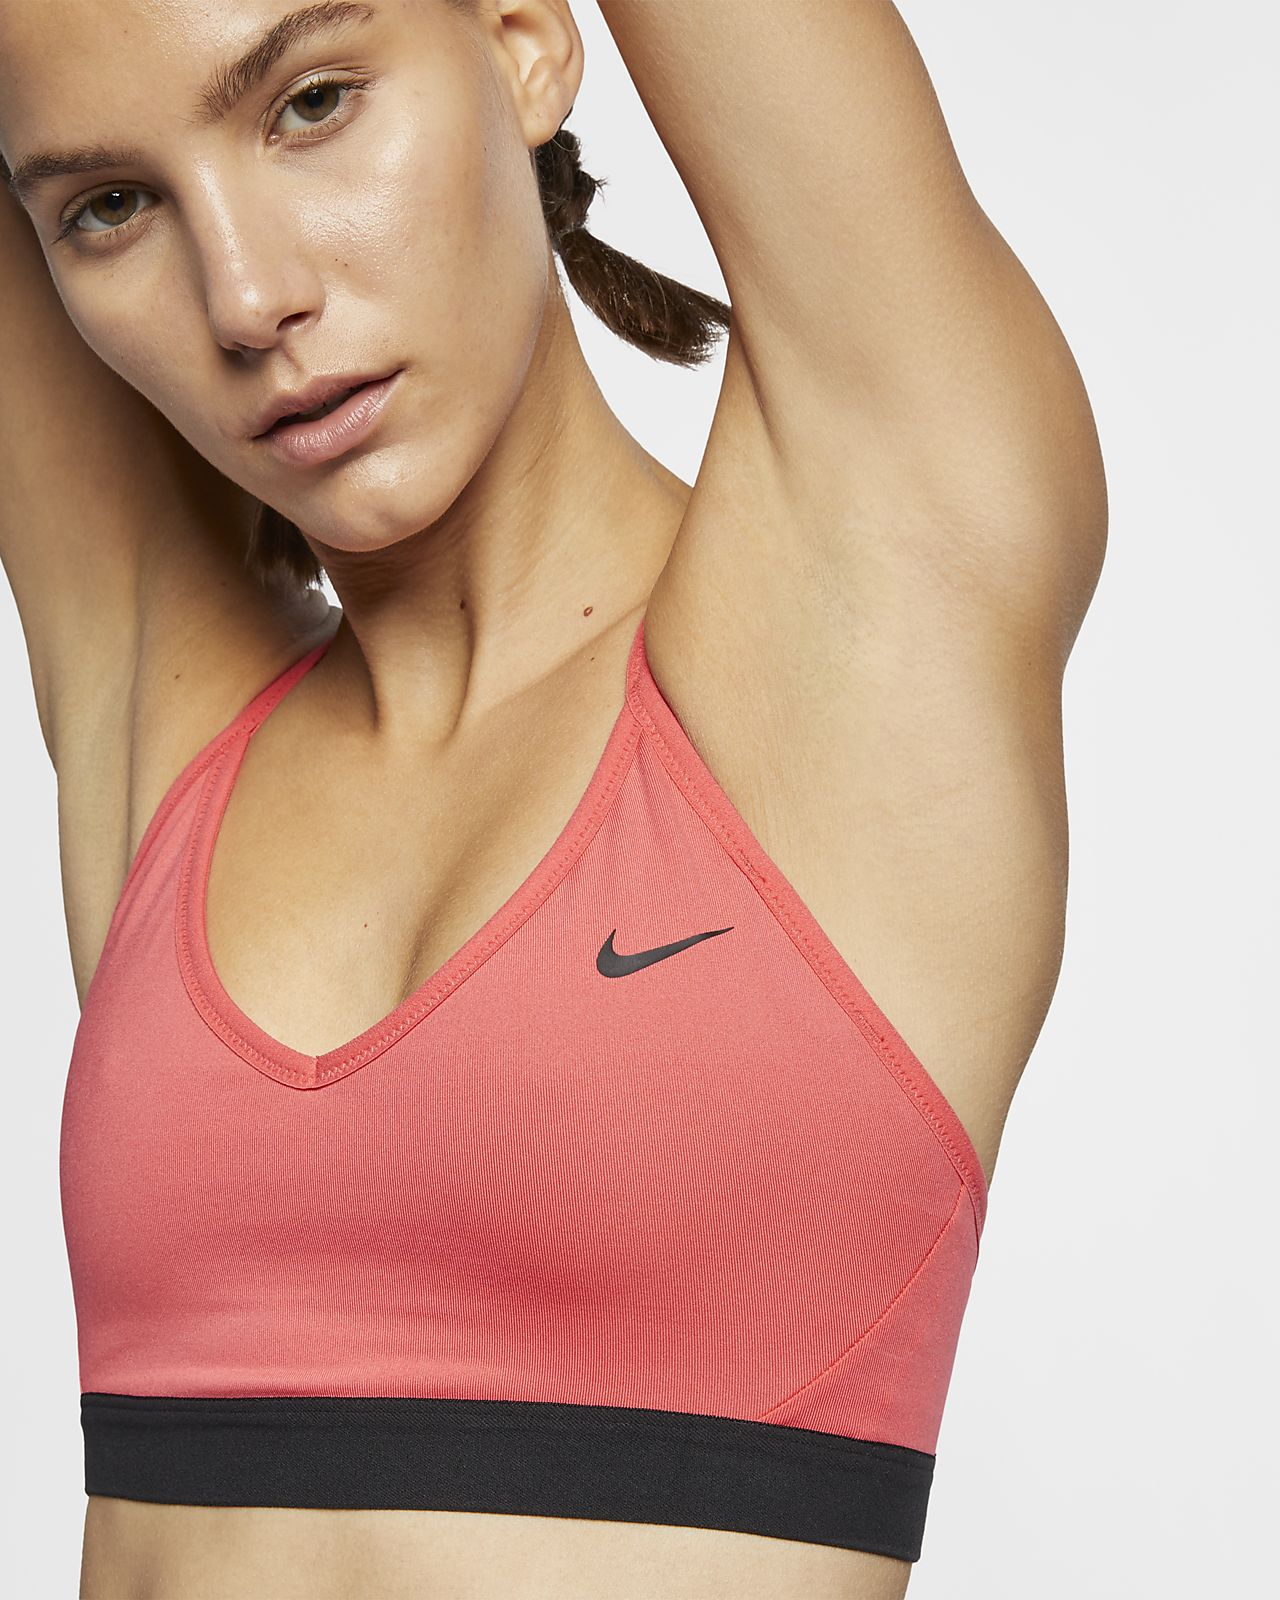 409a8535f2 Nike Indy Women s Light-Support Sports Bra. Nike.com